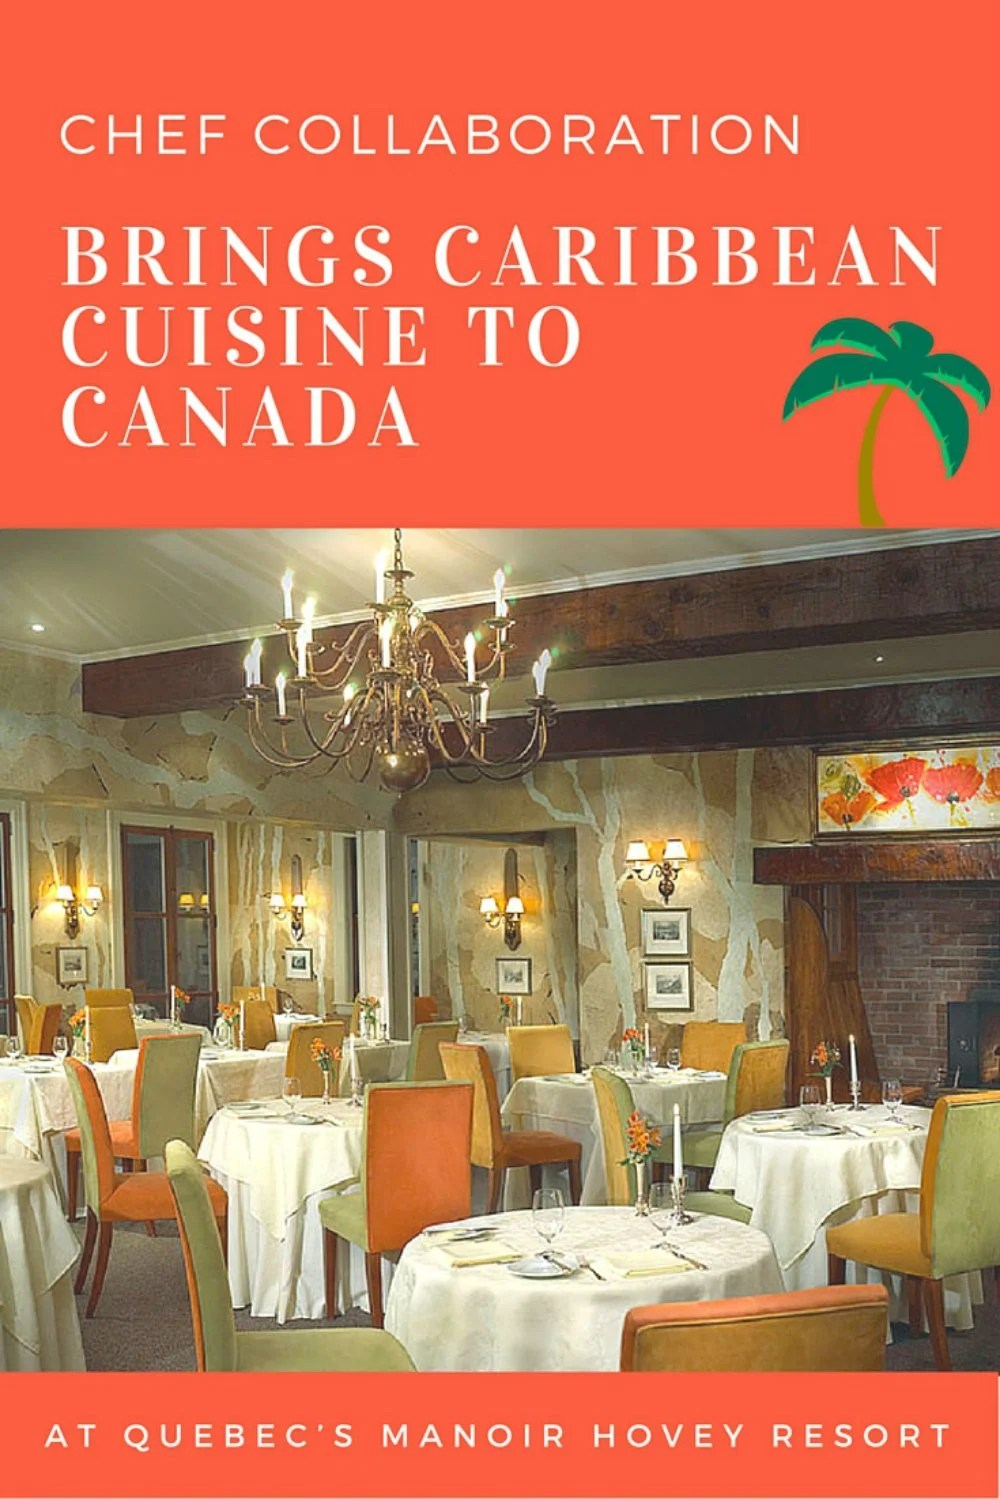 Two of the finest Relais & Chateaux resorts are making a splash on June 30th at Quebec's Manoir Hovey. Canadian cuisine will give way to offerings such as Mini Mofongo with Maine Lobster, Yuca Mangu with Quail Egg Yolk and Summer Truffle, and Risotto with Aji Panca. Read on for details and a recipe for Red Snapper and Tuna Tartar!